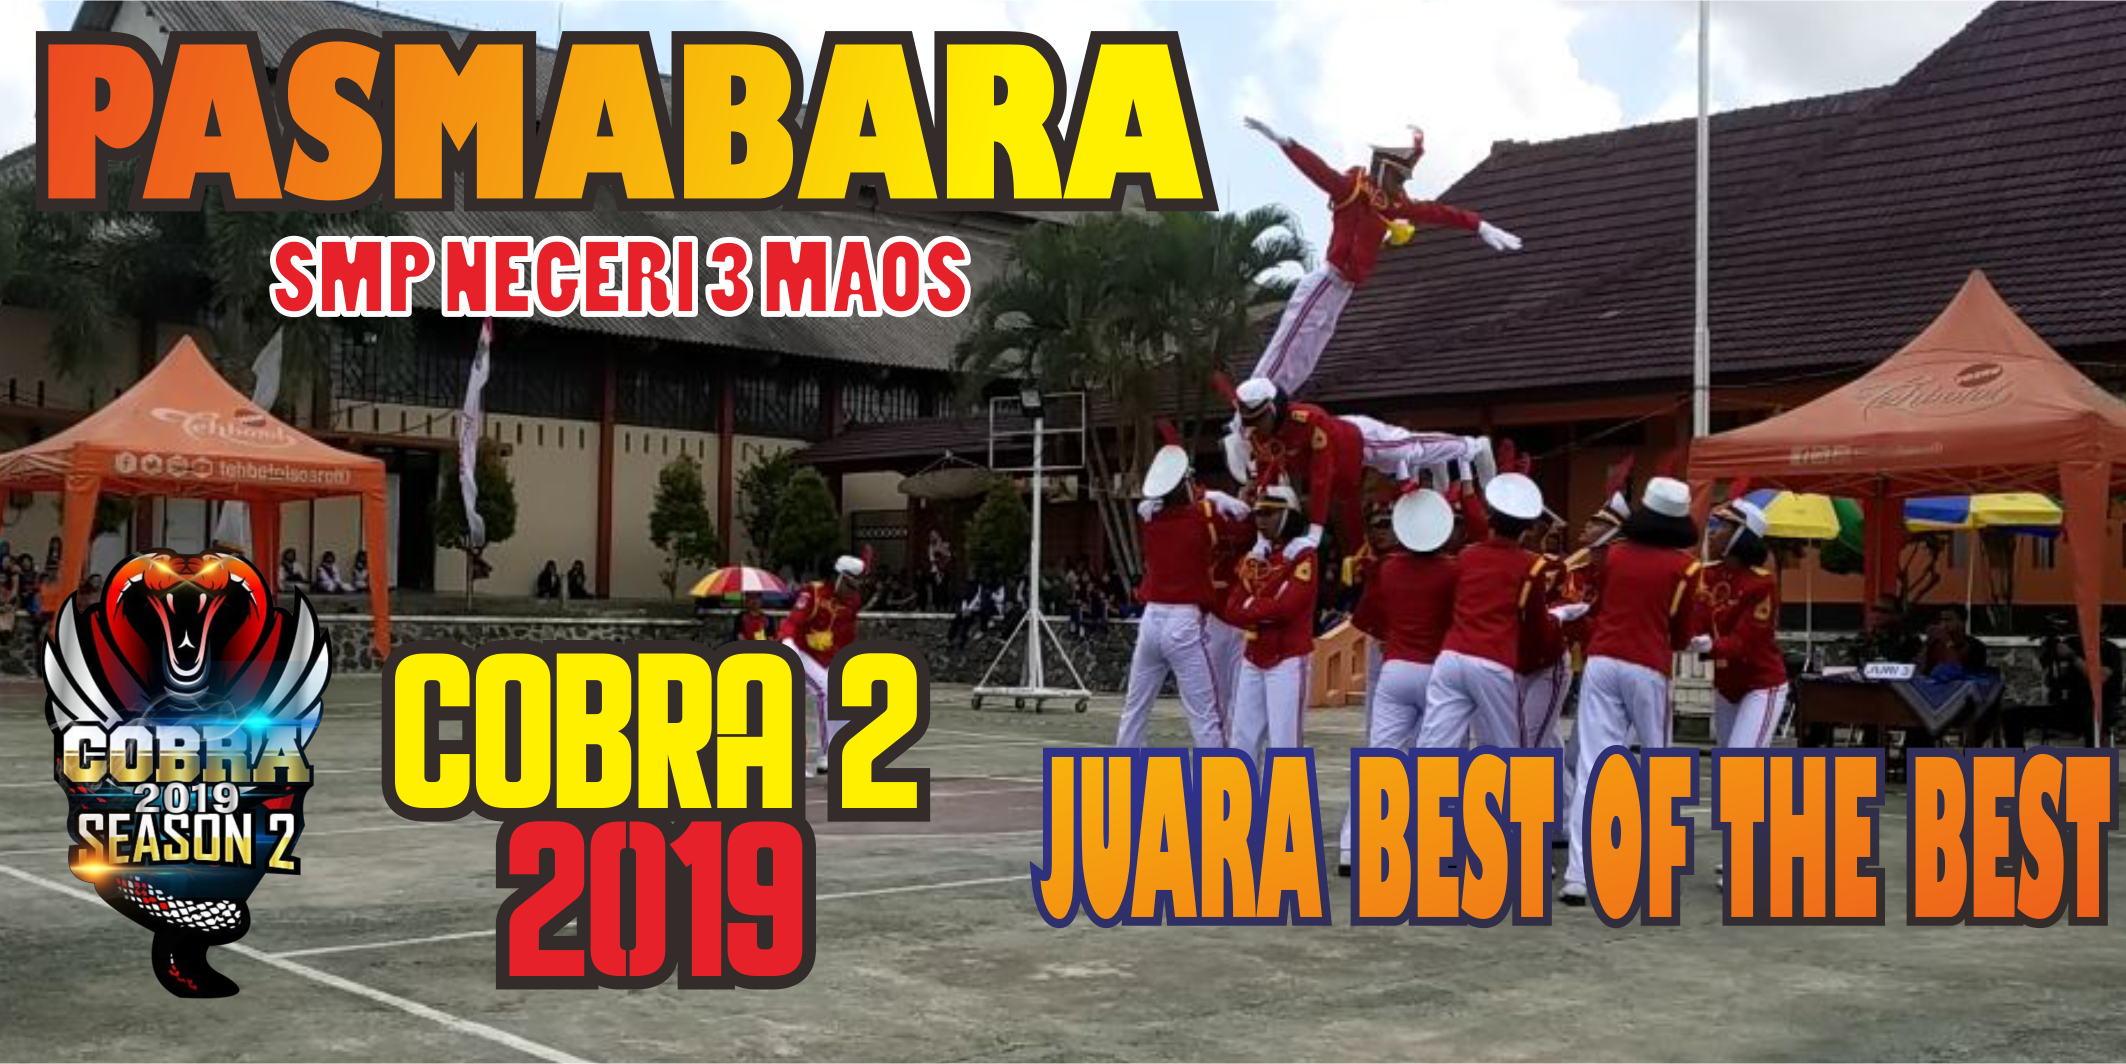 Juara Best of The Best COBRA 2 Tahun 2019